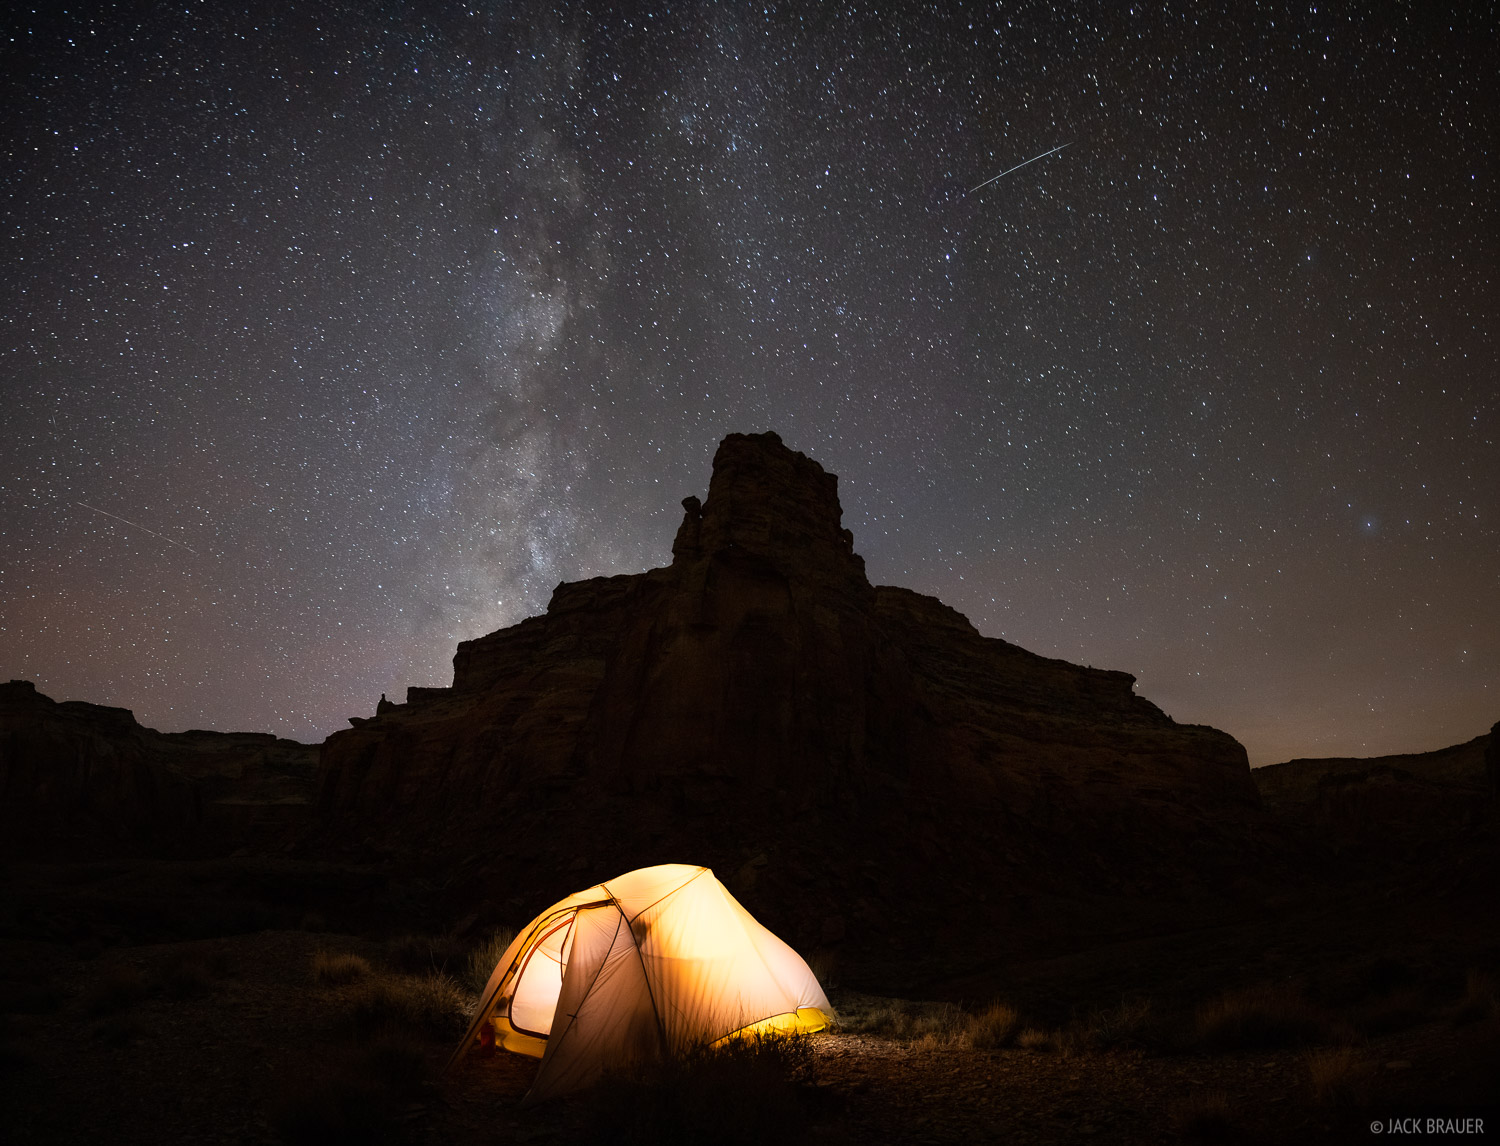 Chimney Canyon, San Rafael Swell, Utah, stars, tent, photo